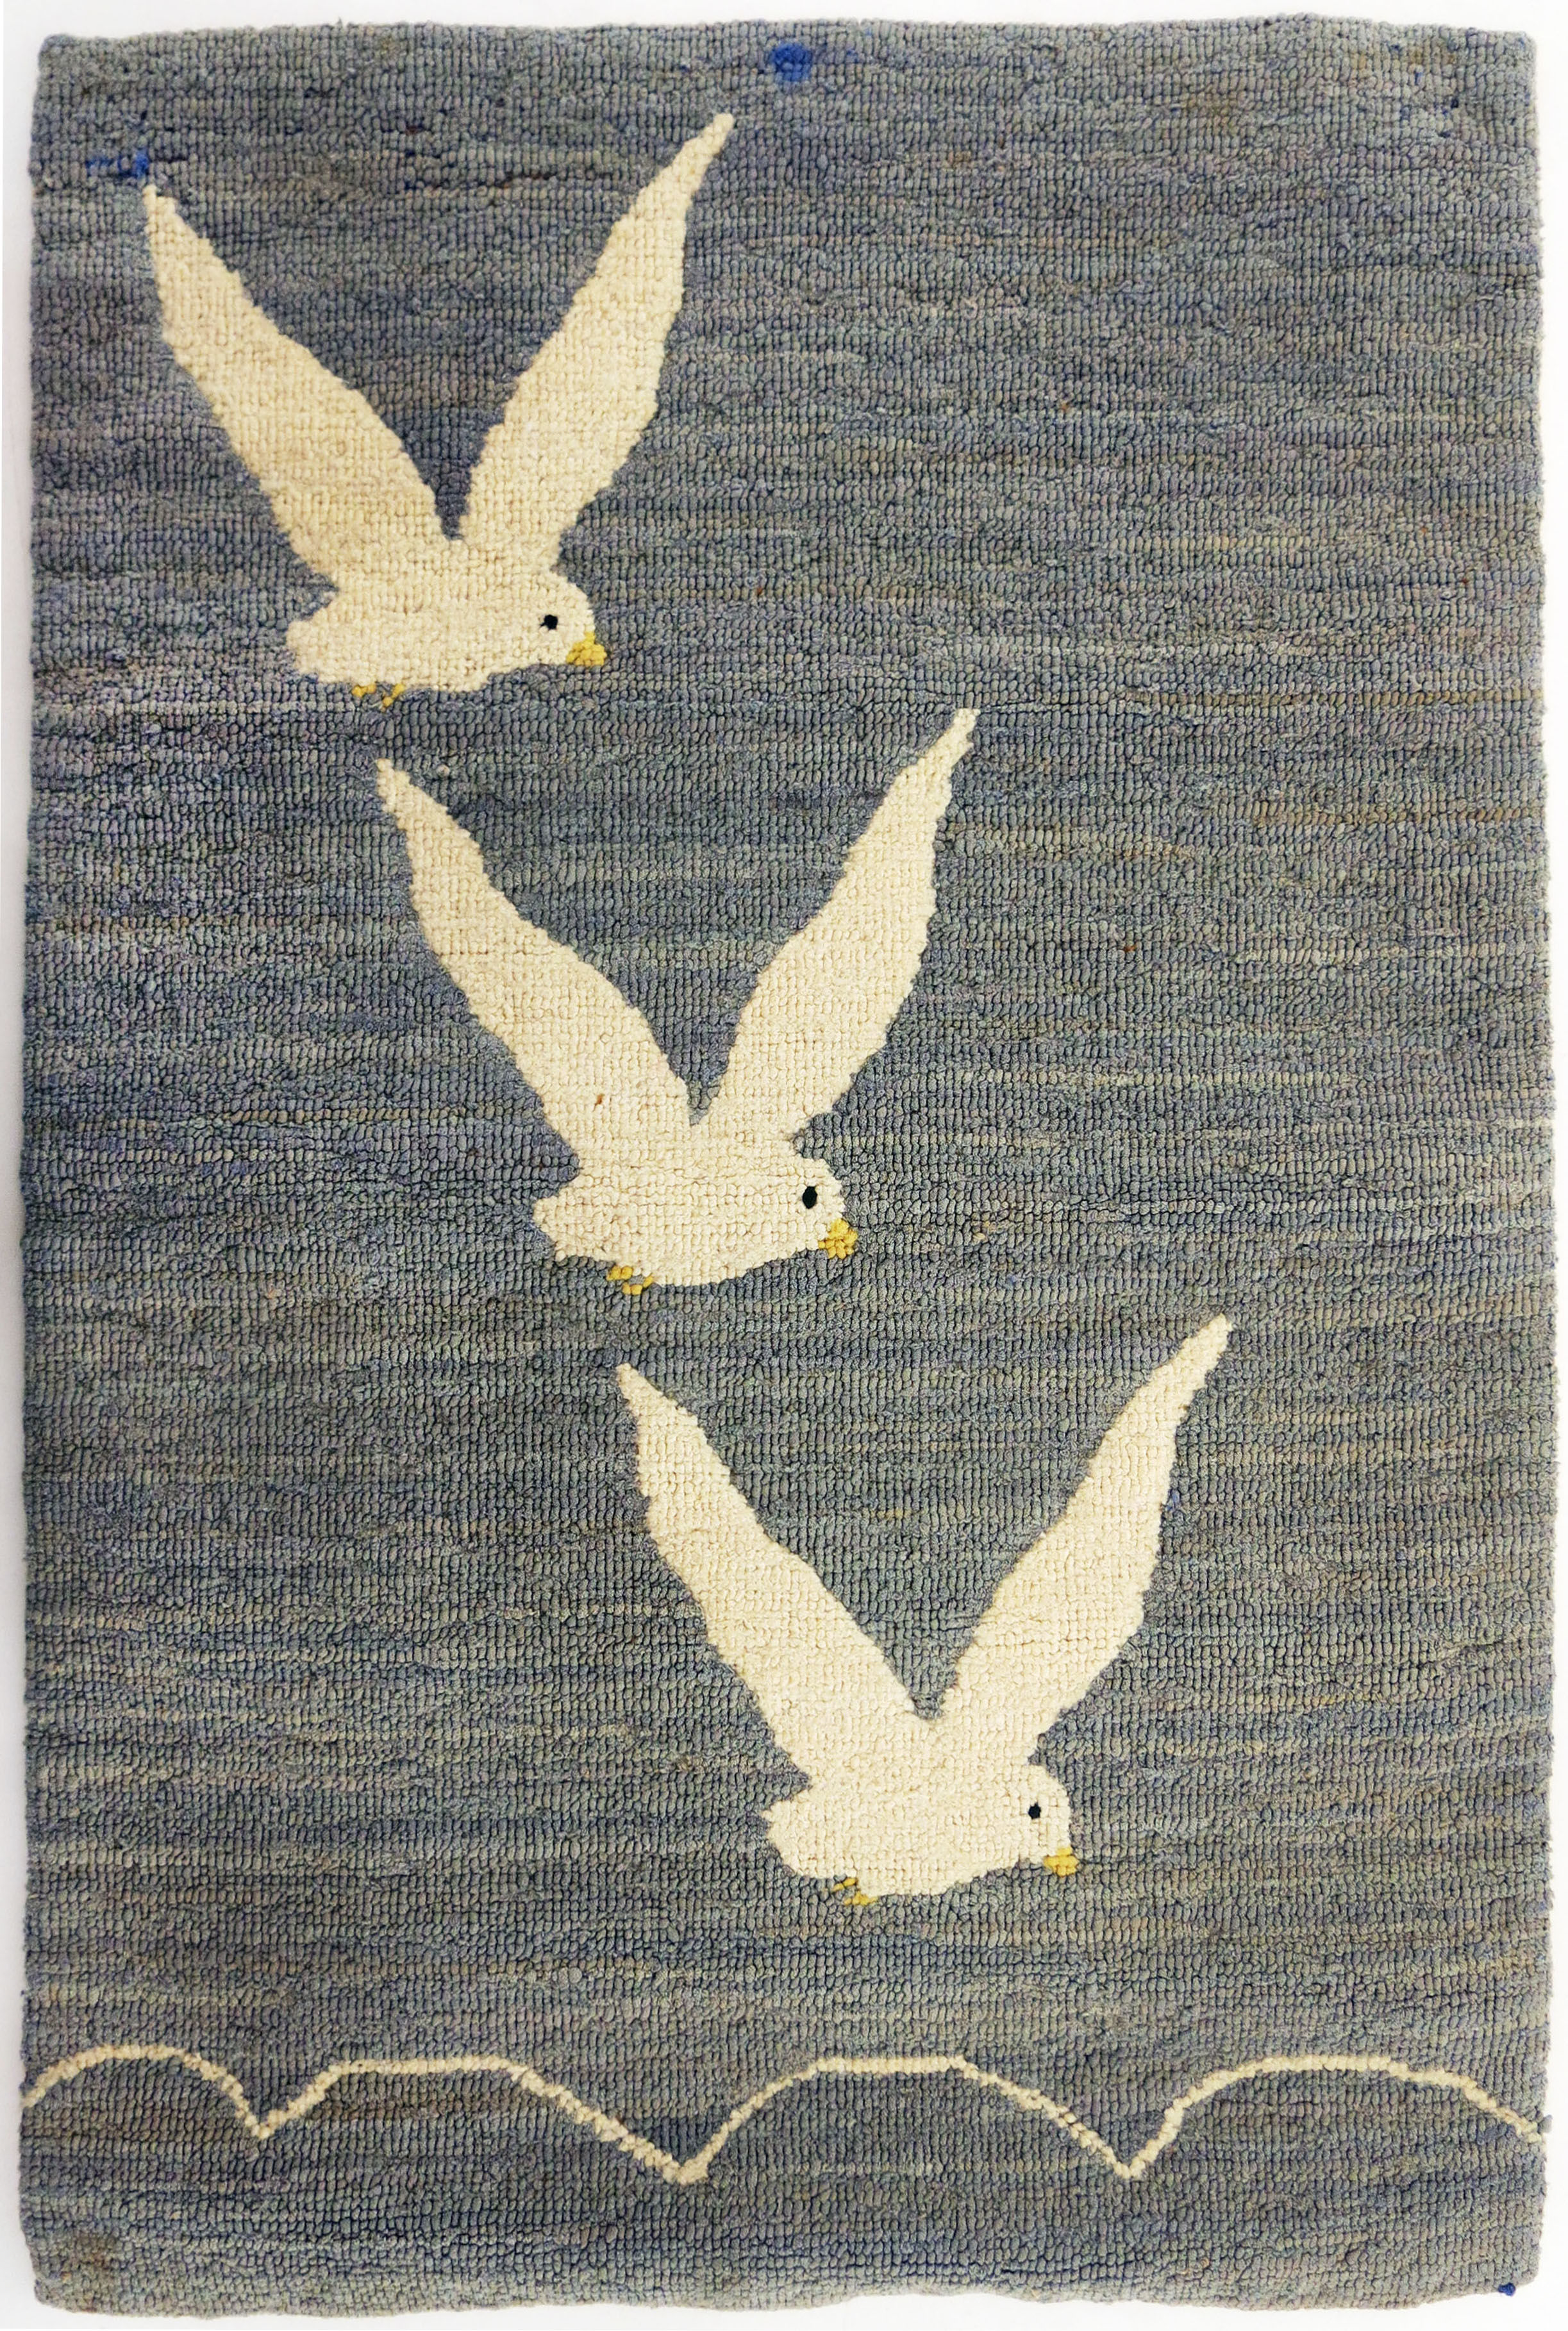 Anonymous, The Grenfell Mission, 3 Seagulls/Victory, c. 1930, silk, rayon; dyed, 21h x 14w in.